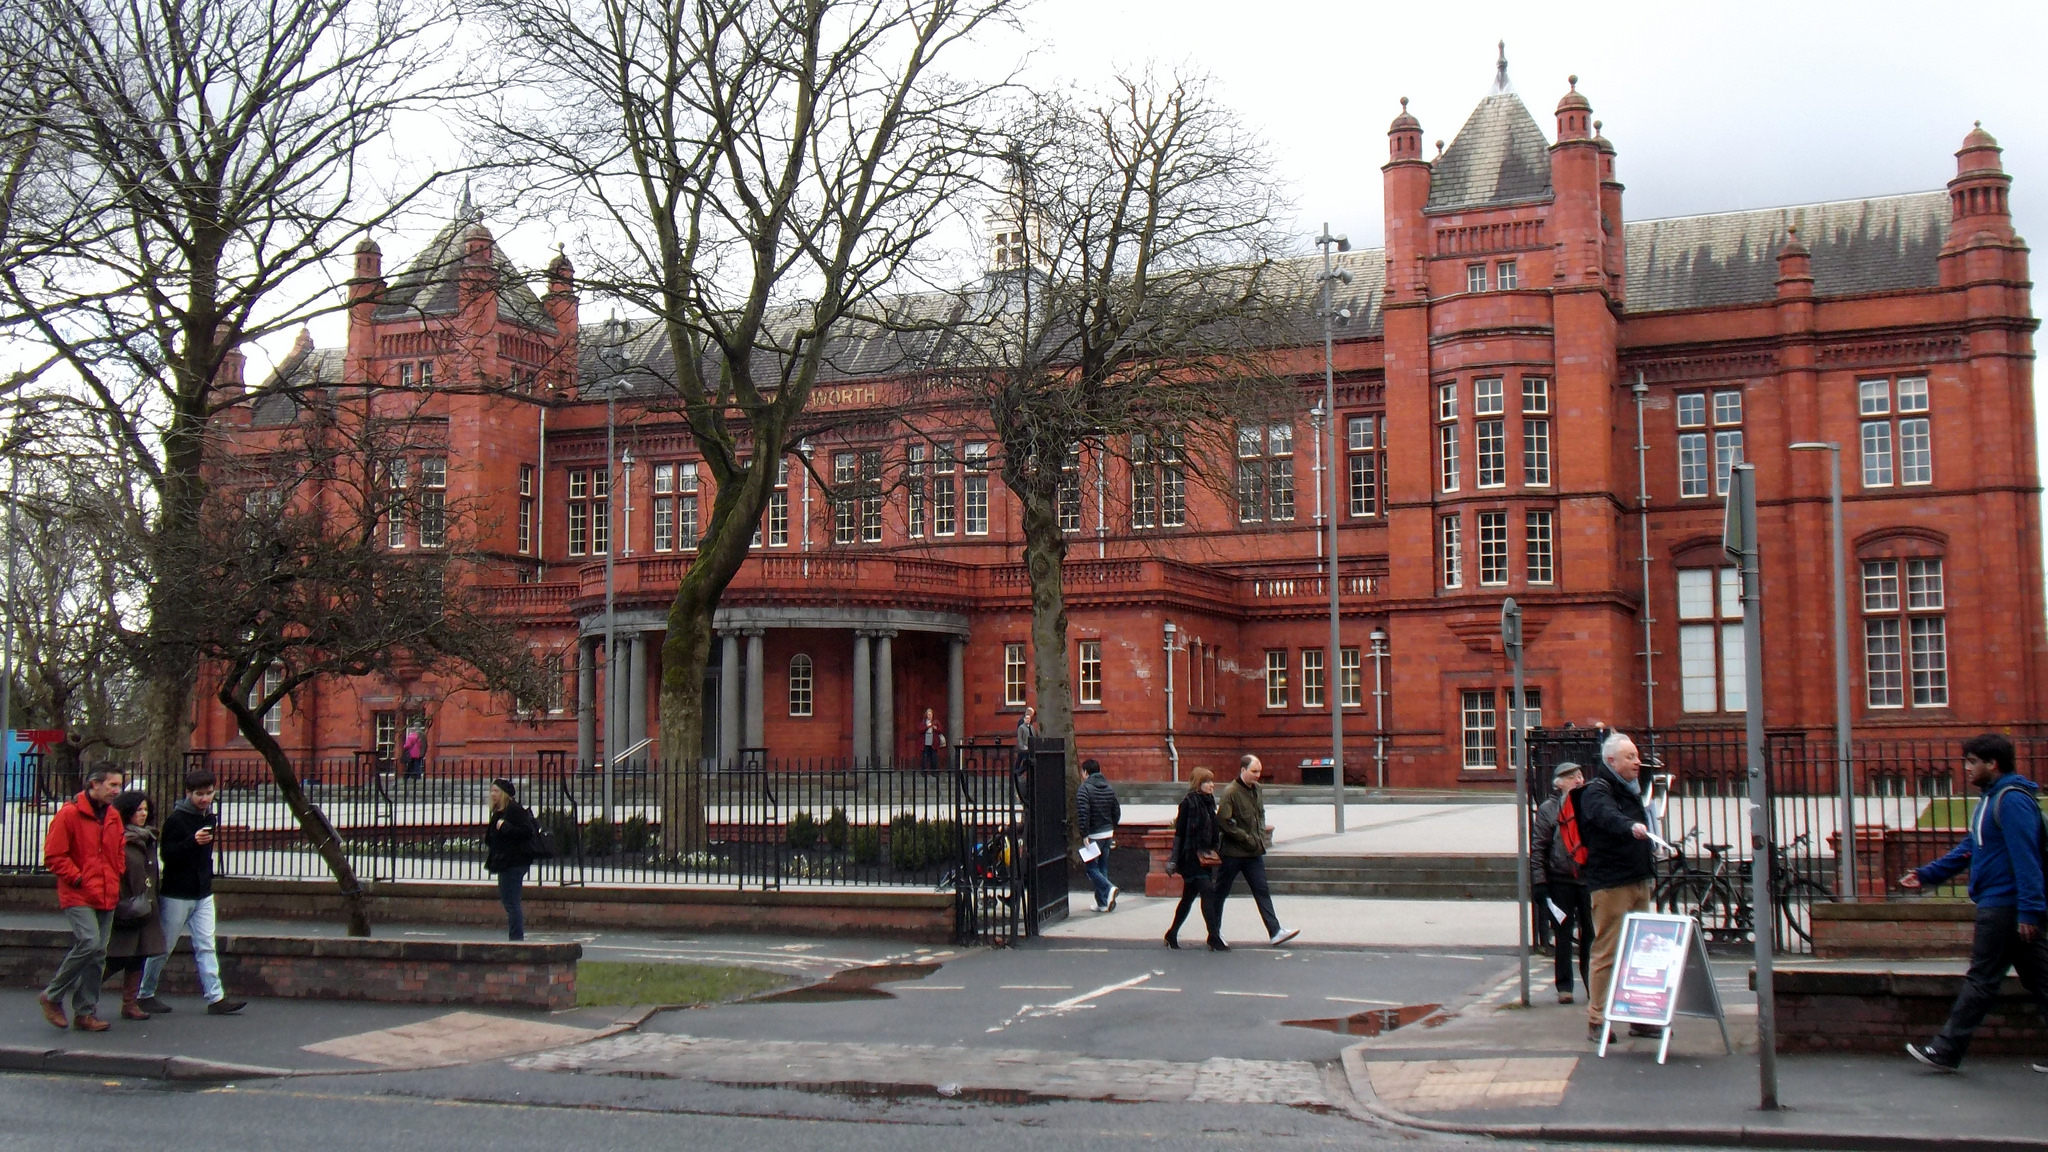 image of The Whitworth